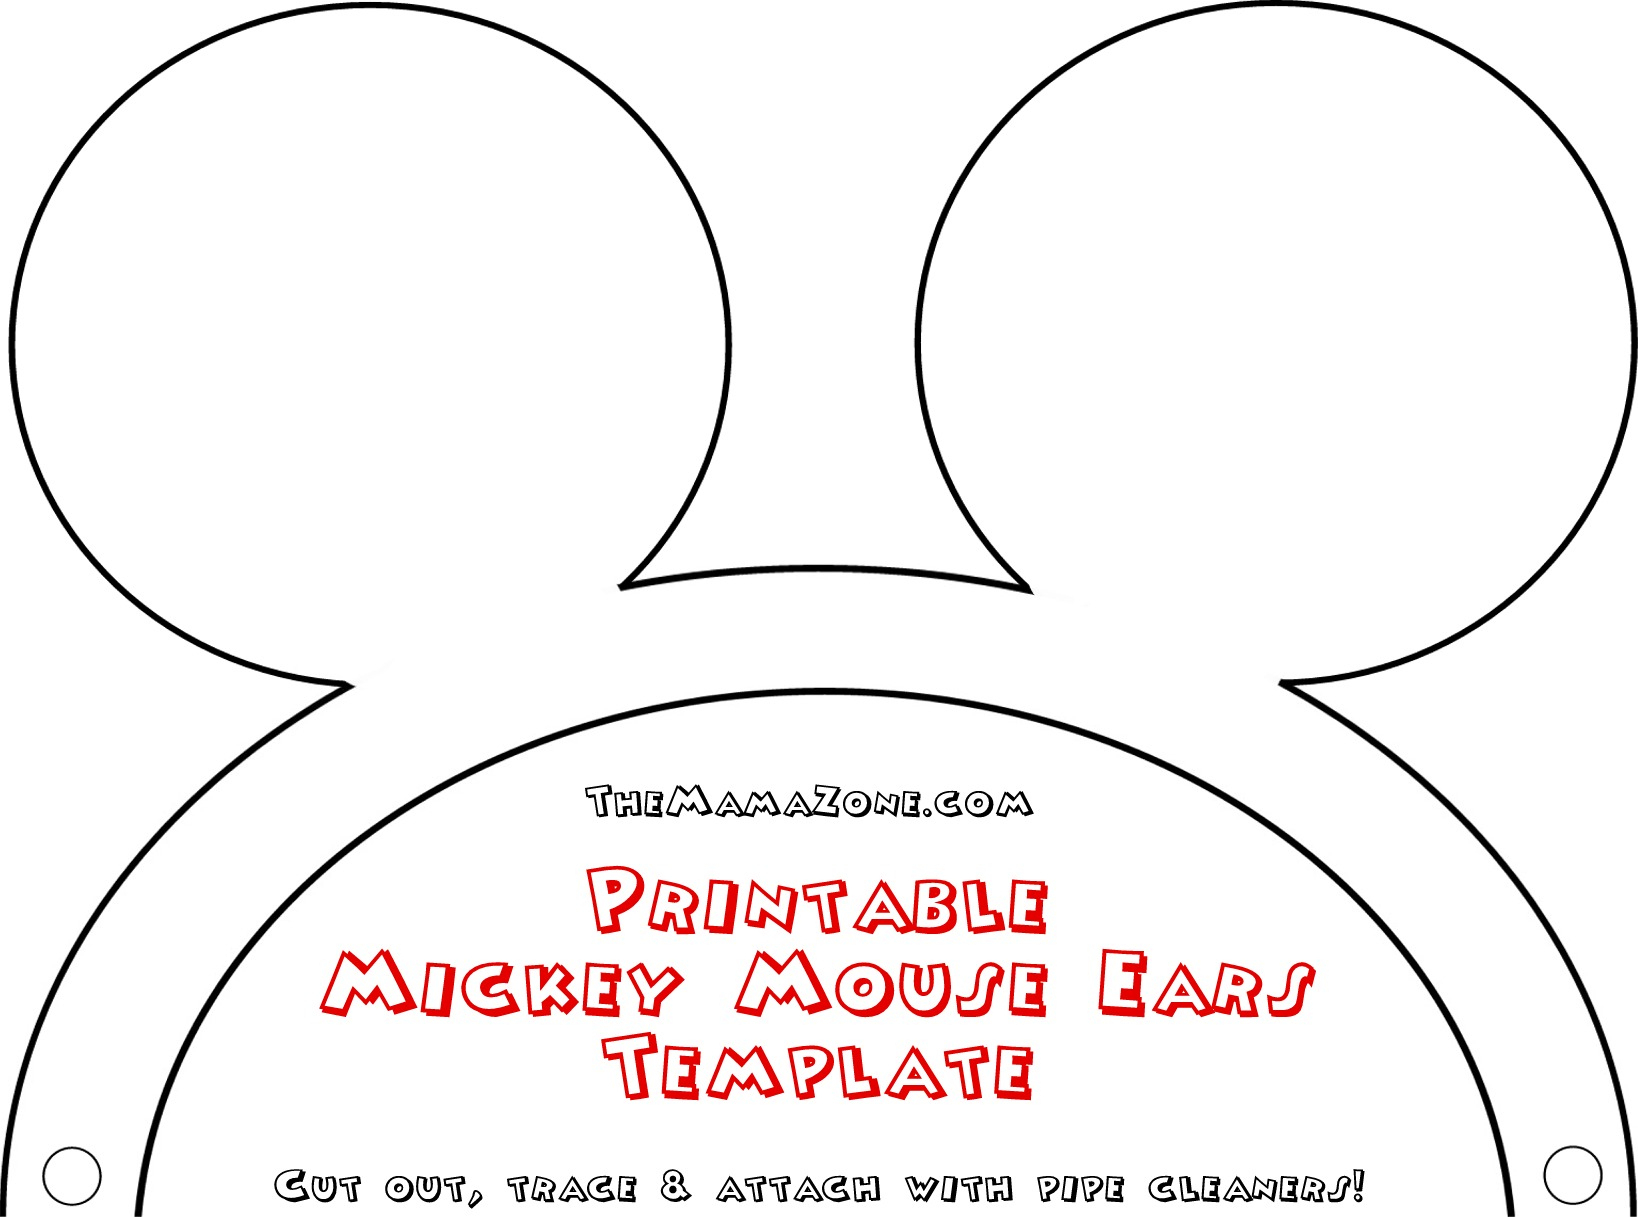 Free Mickey Mouse Ears Template   The Mama Zone - Free Printable Mickey Mouse Template